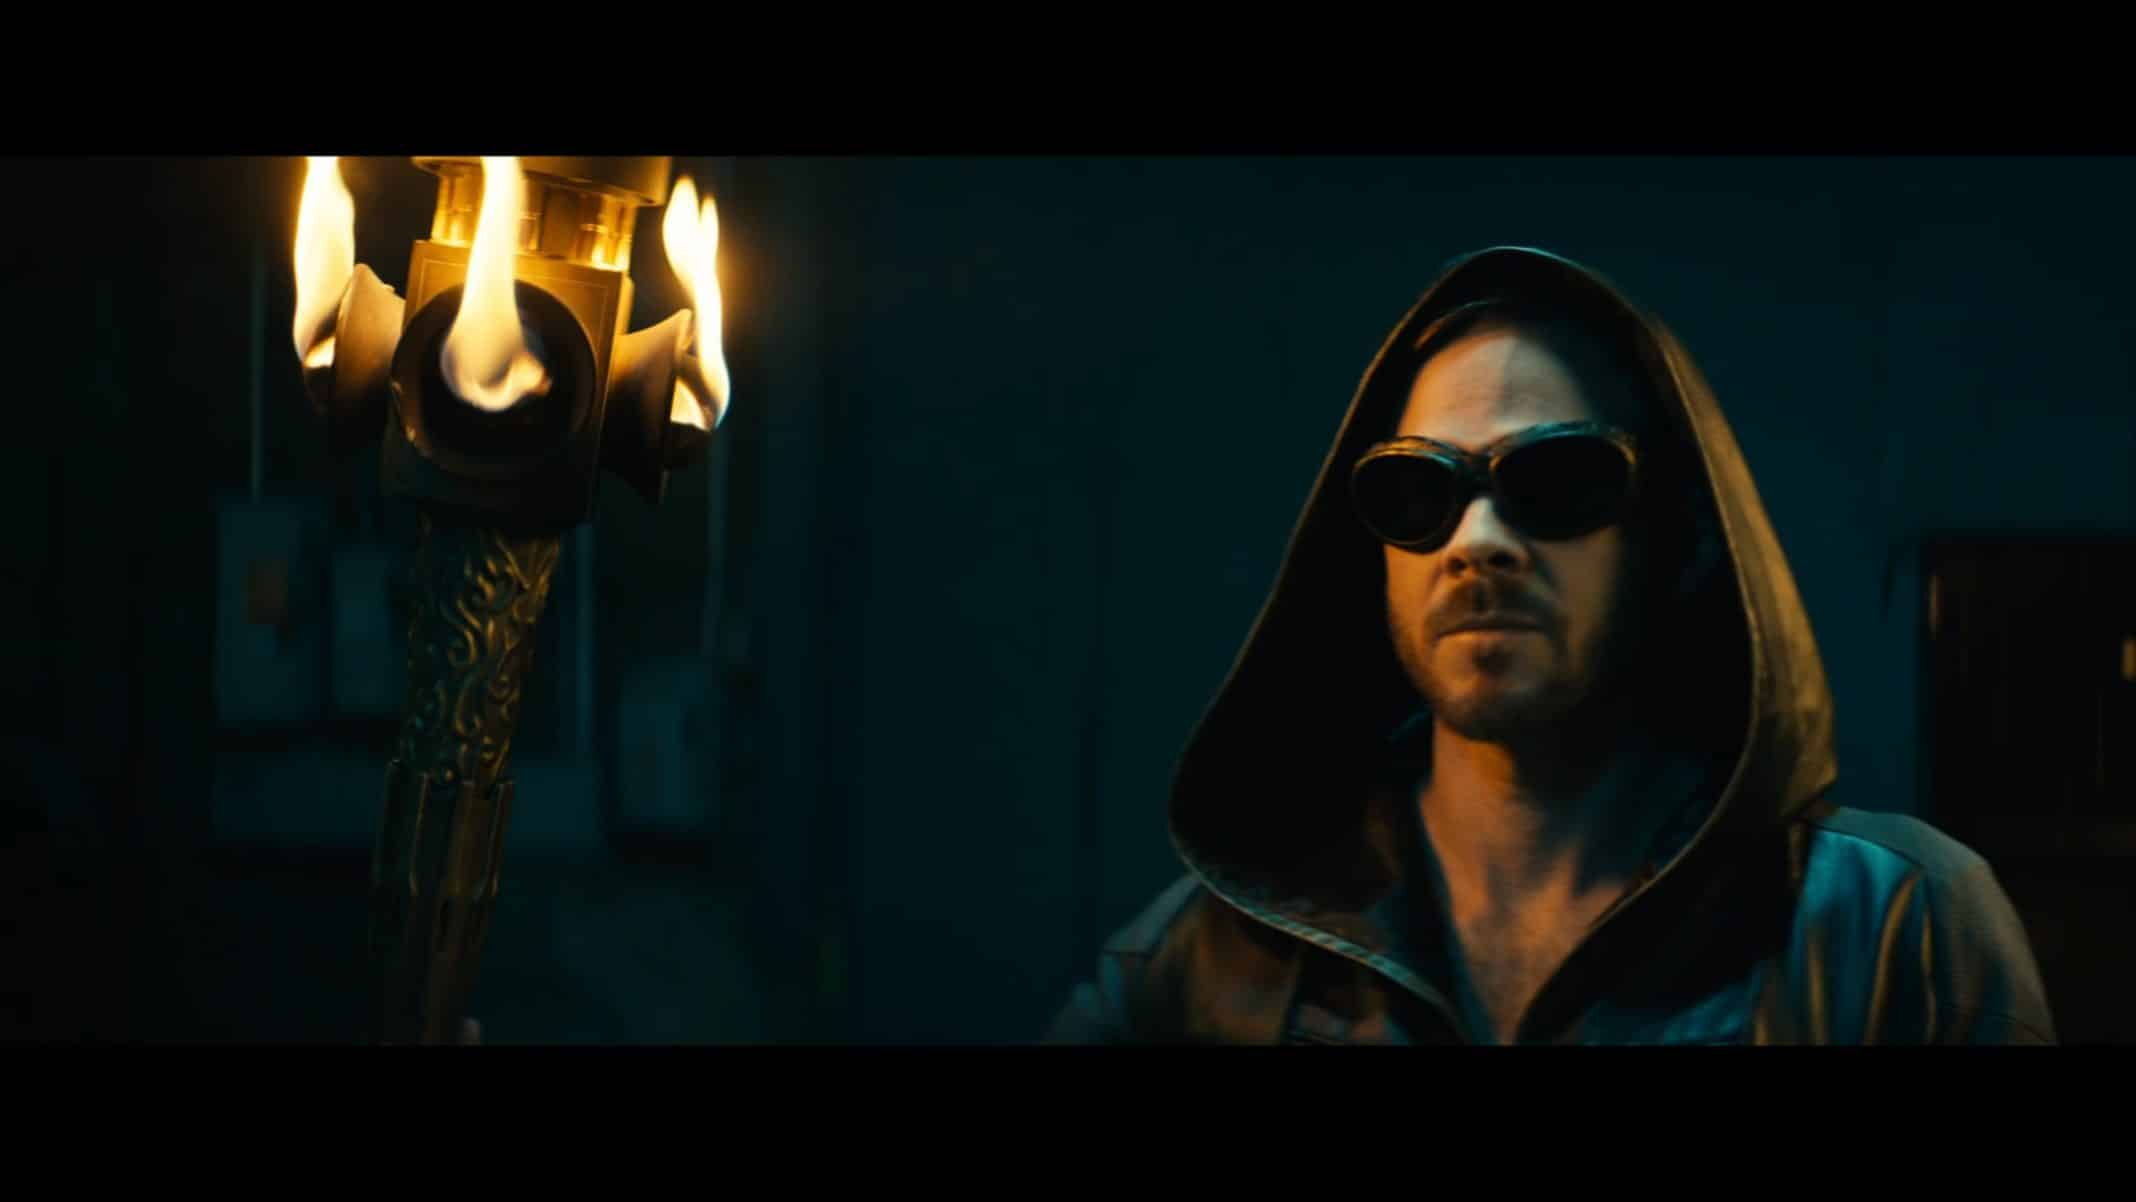 Lamplighter (Shawn Ashmore) in his costume.